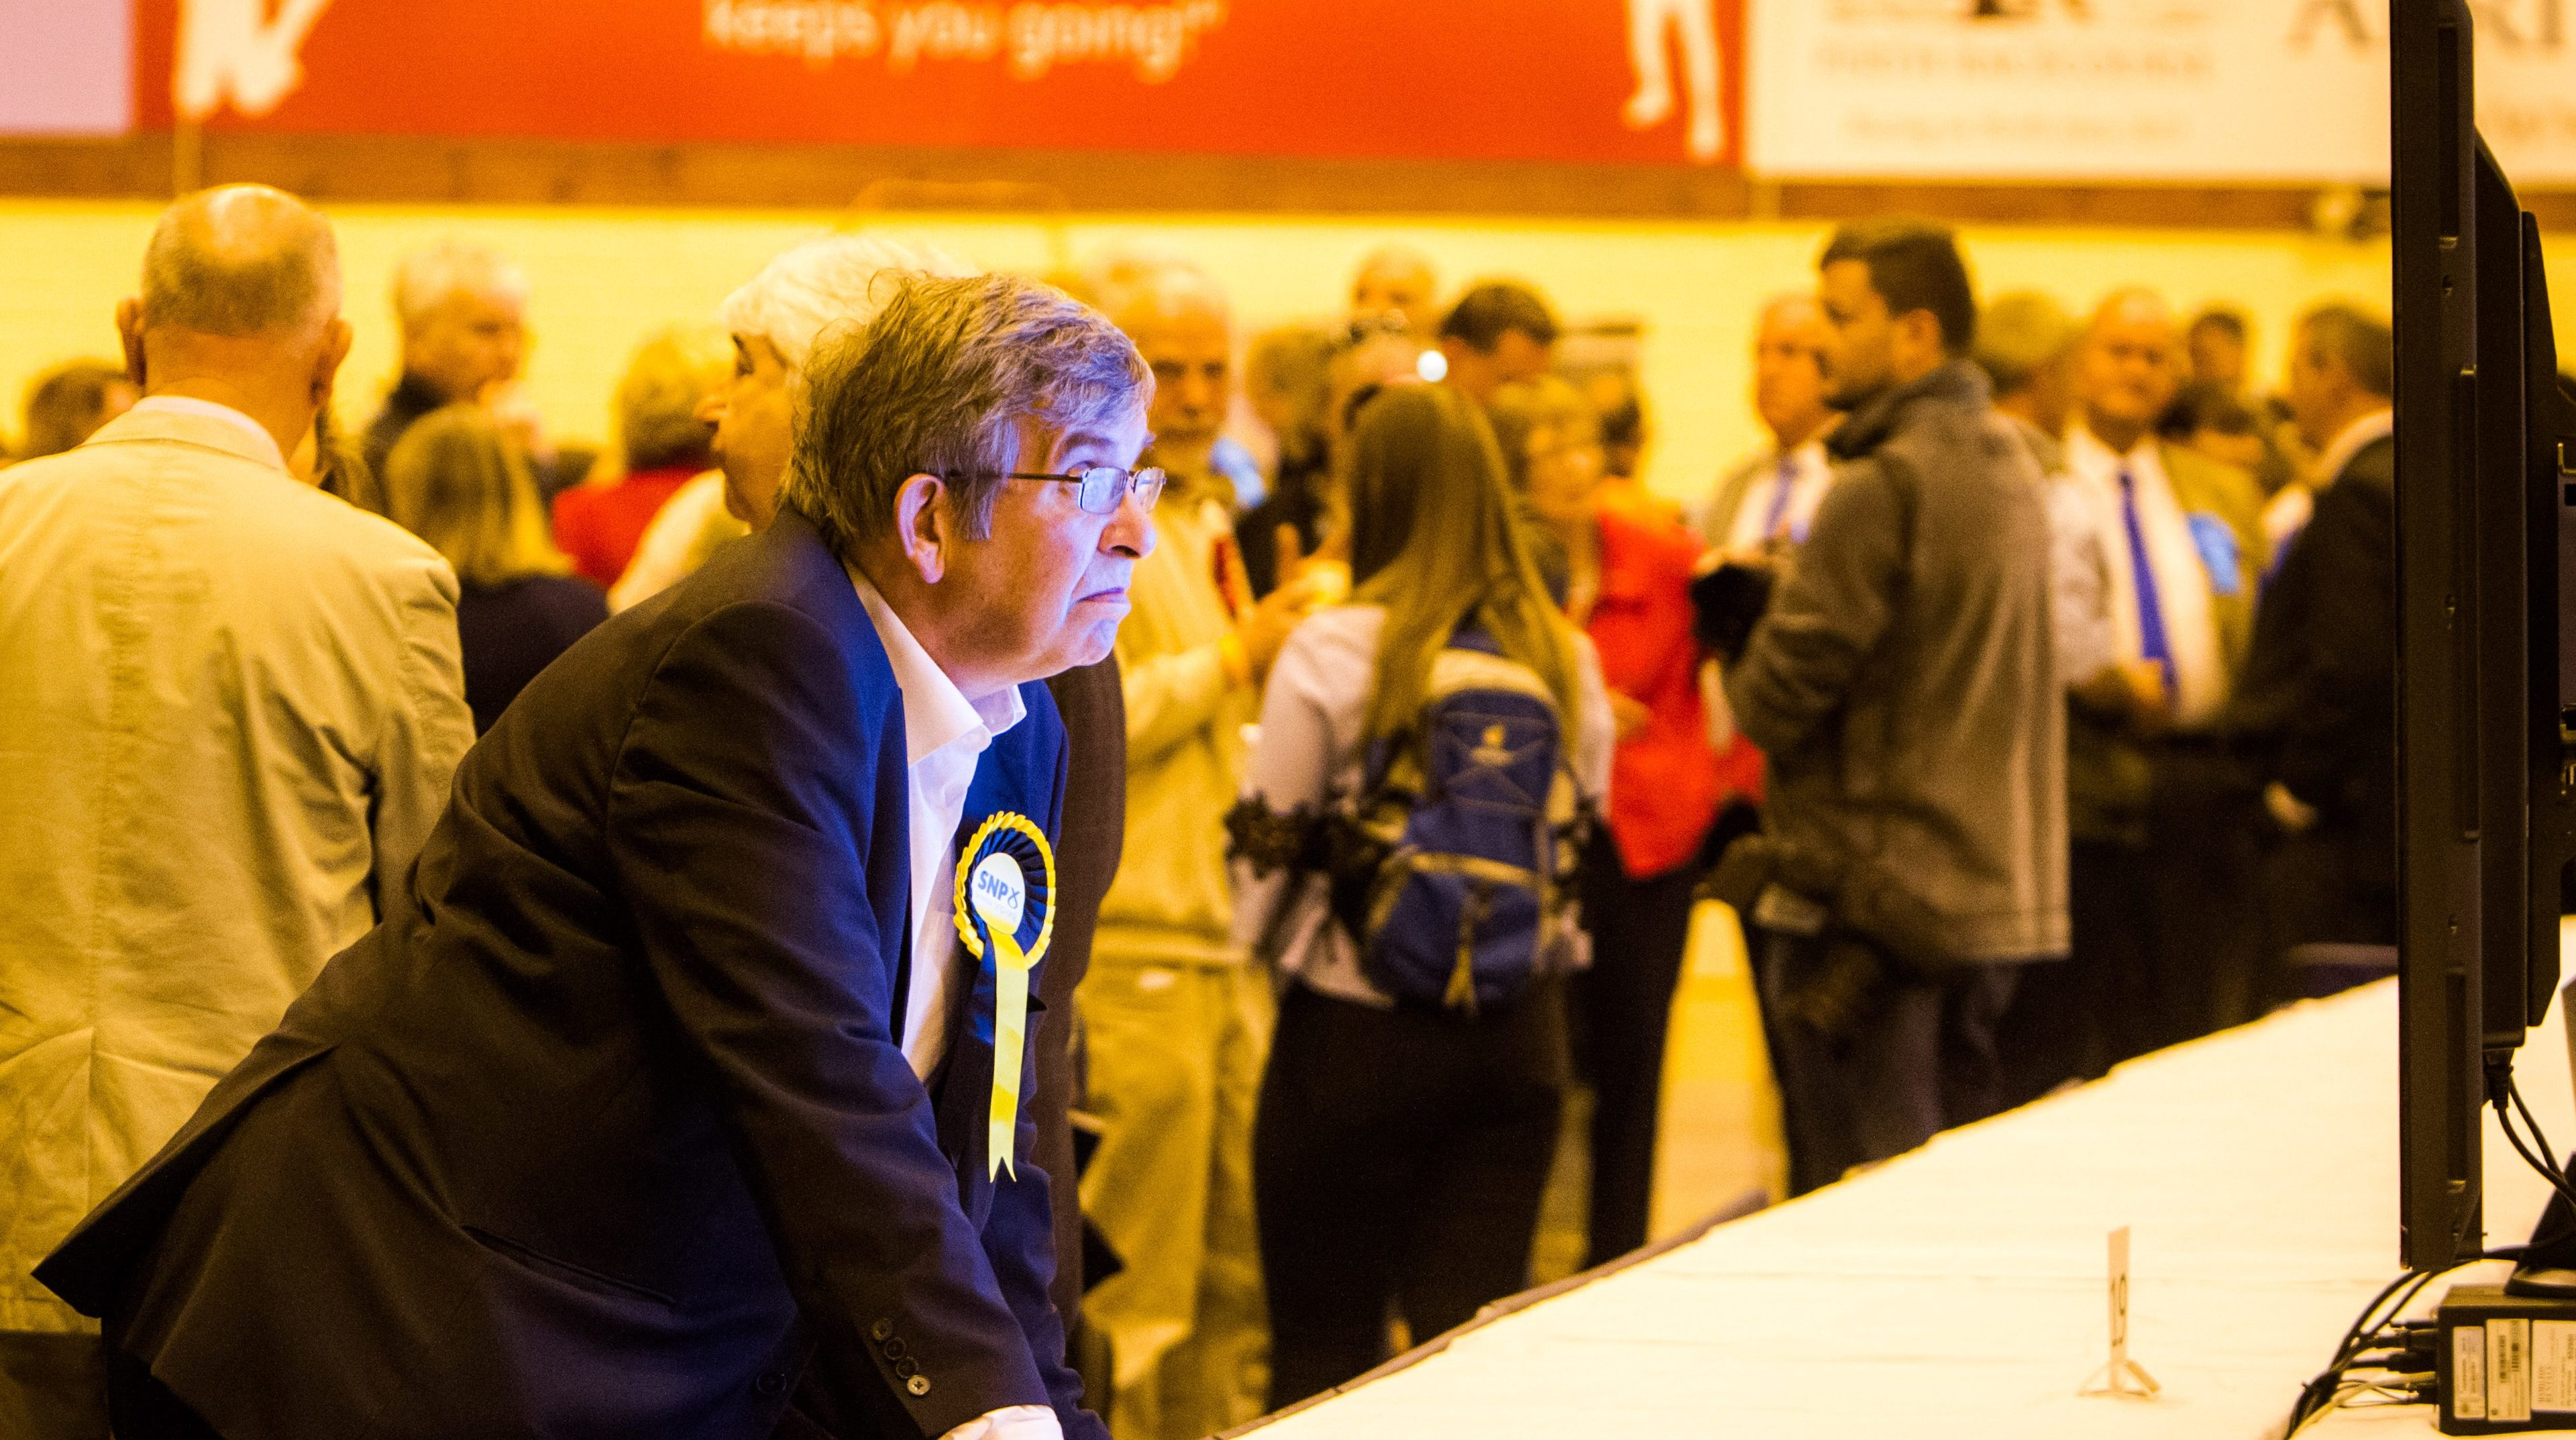 An SNP supporter seeing blue on the screen.